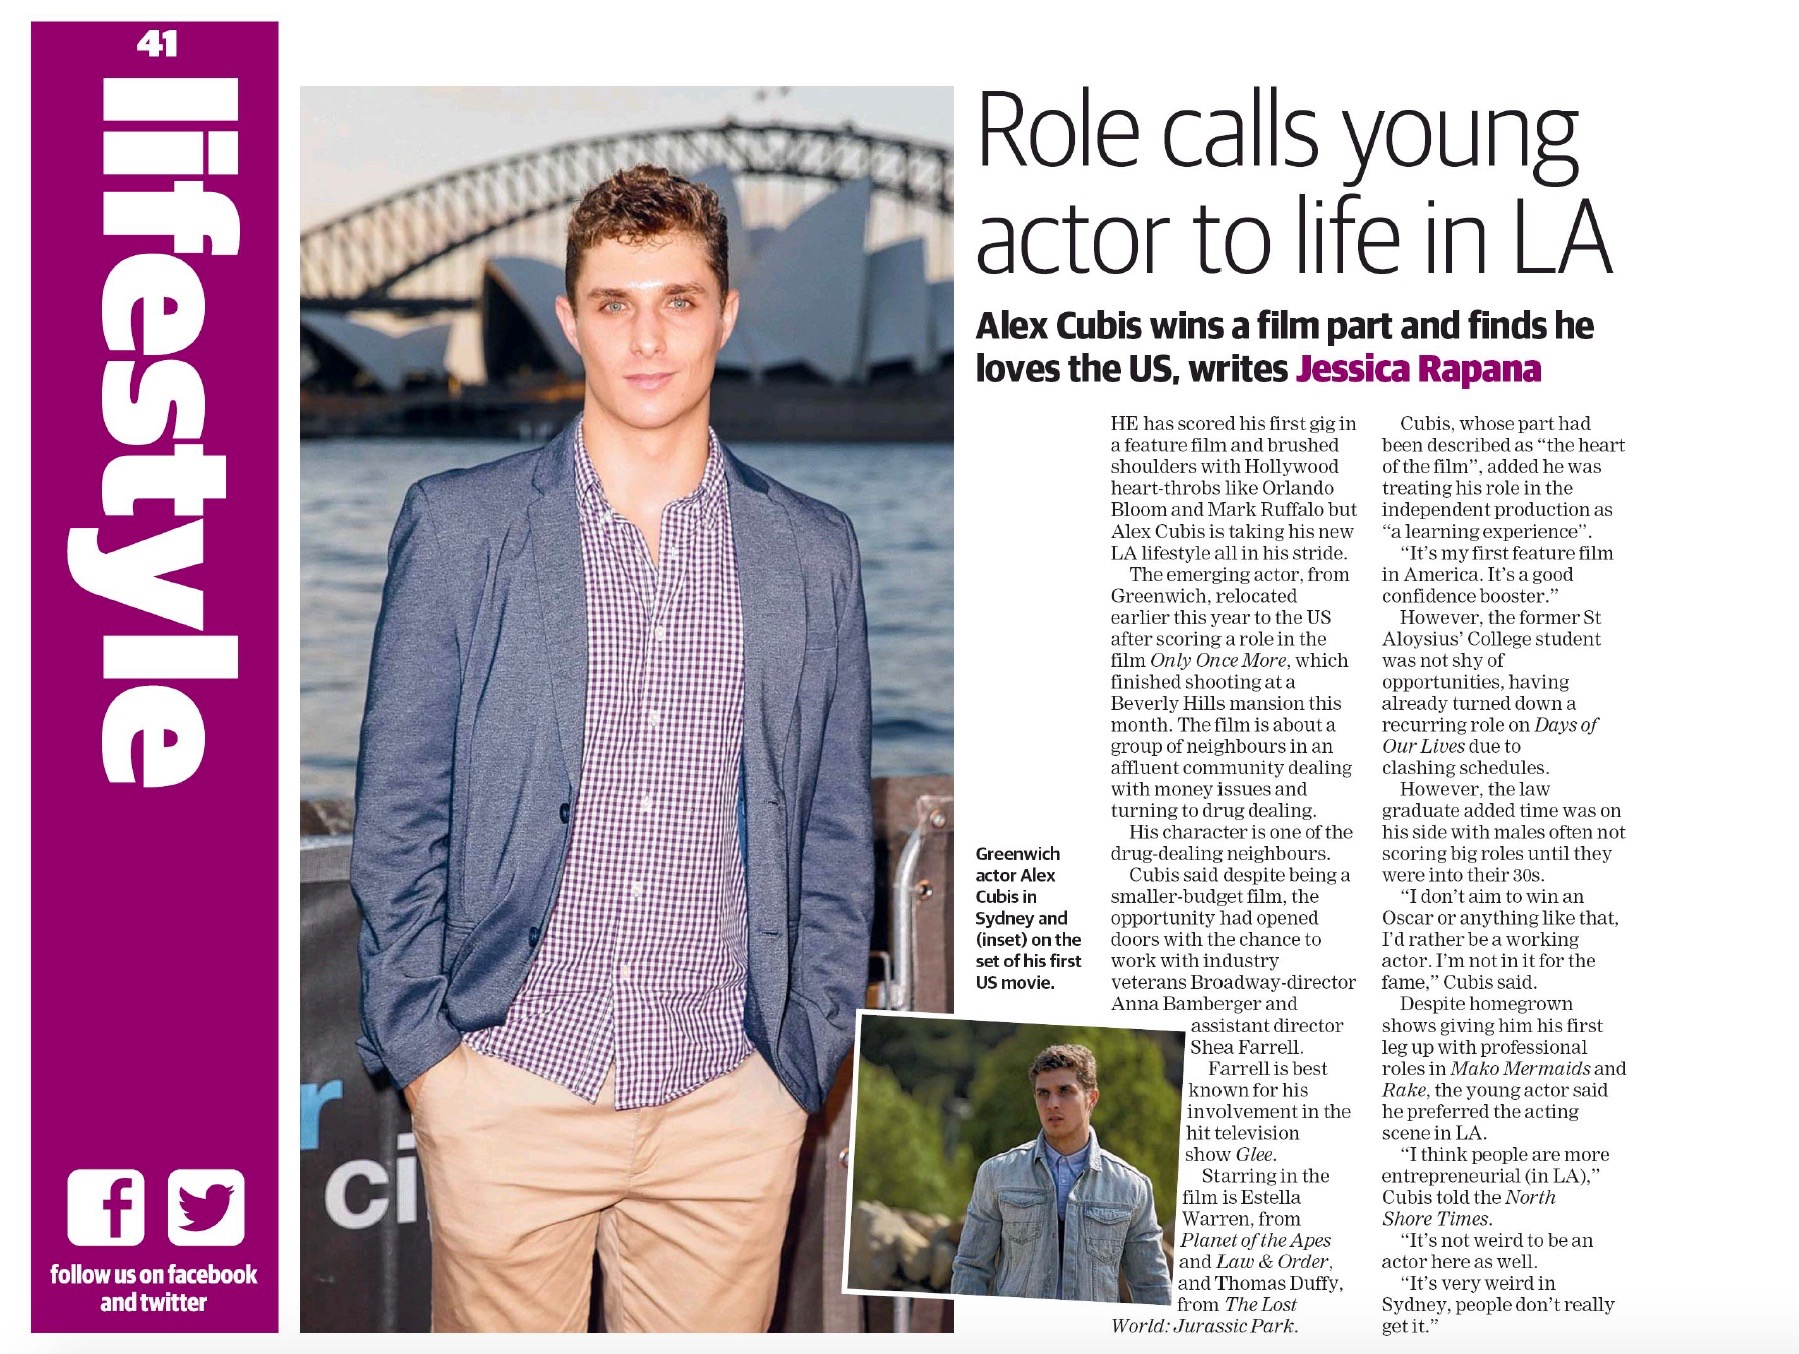 News Corp Profile: Alex Cubis (2016)